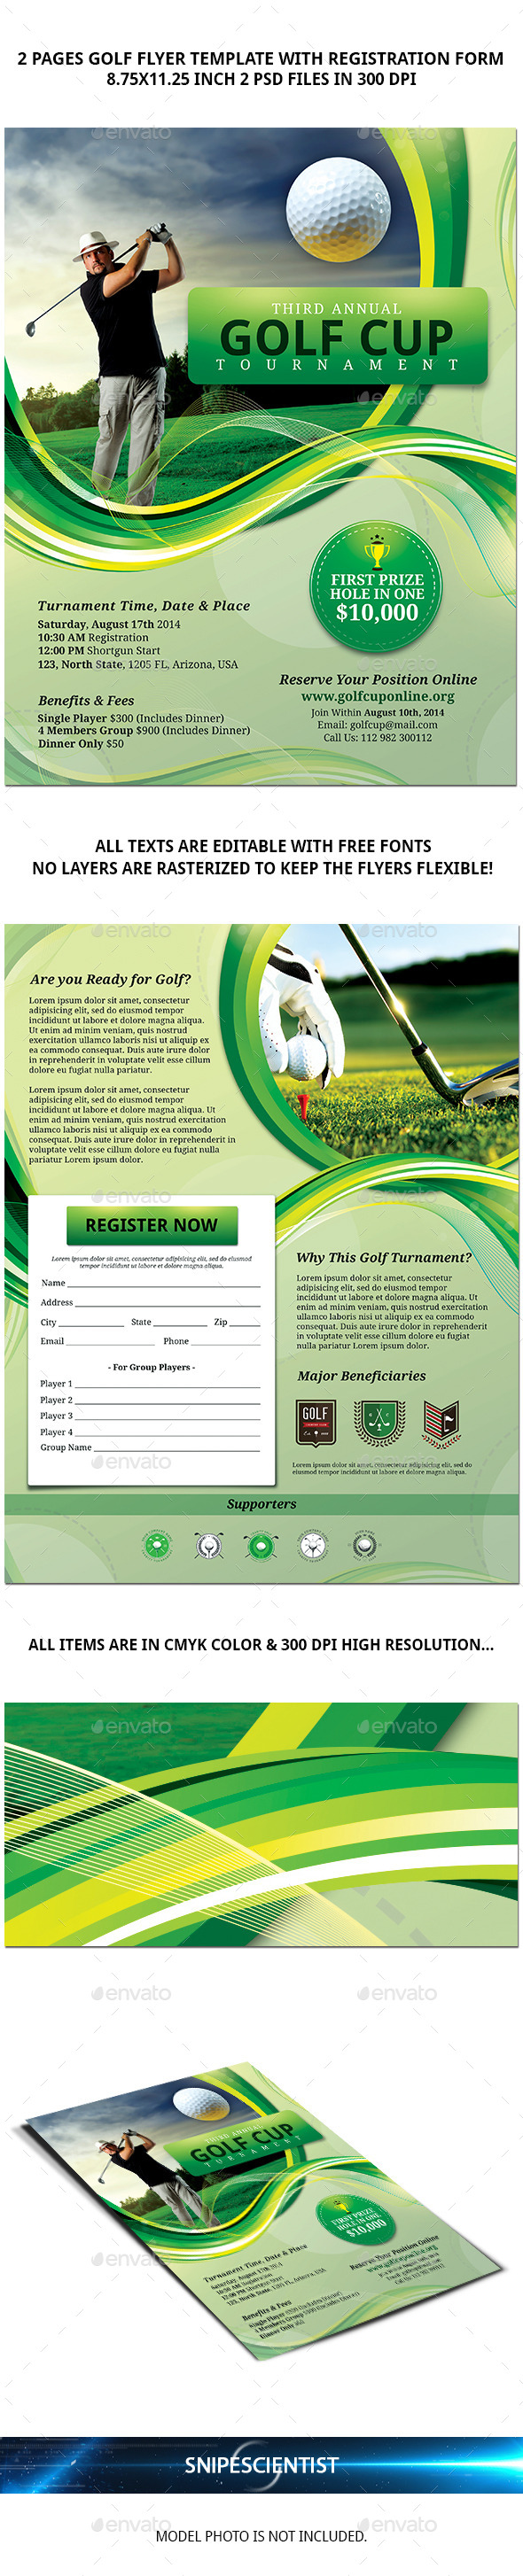 GraphicRiver Golf Flyer Template with Registration Form 8950983